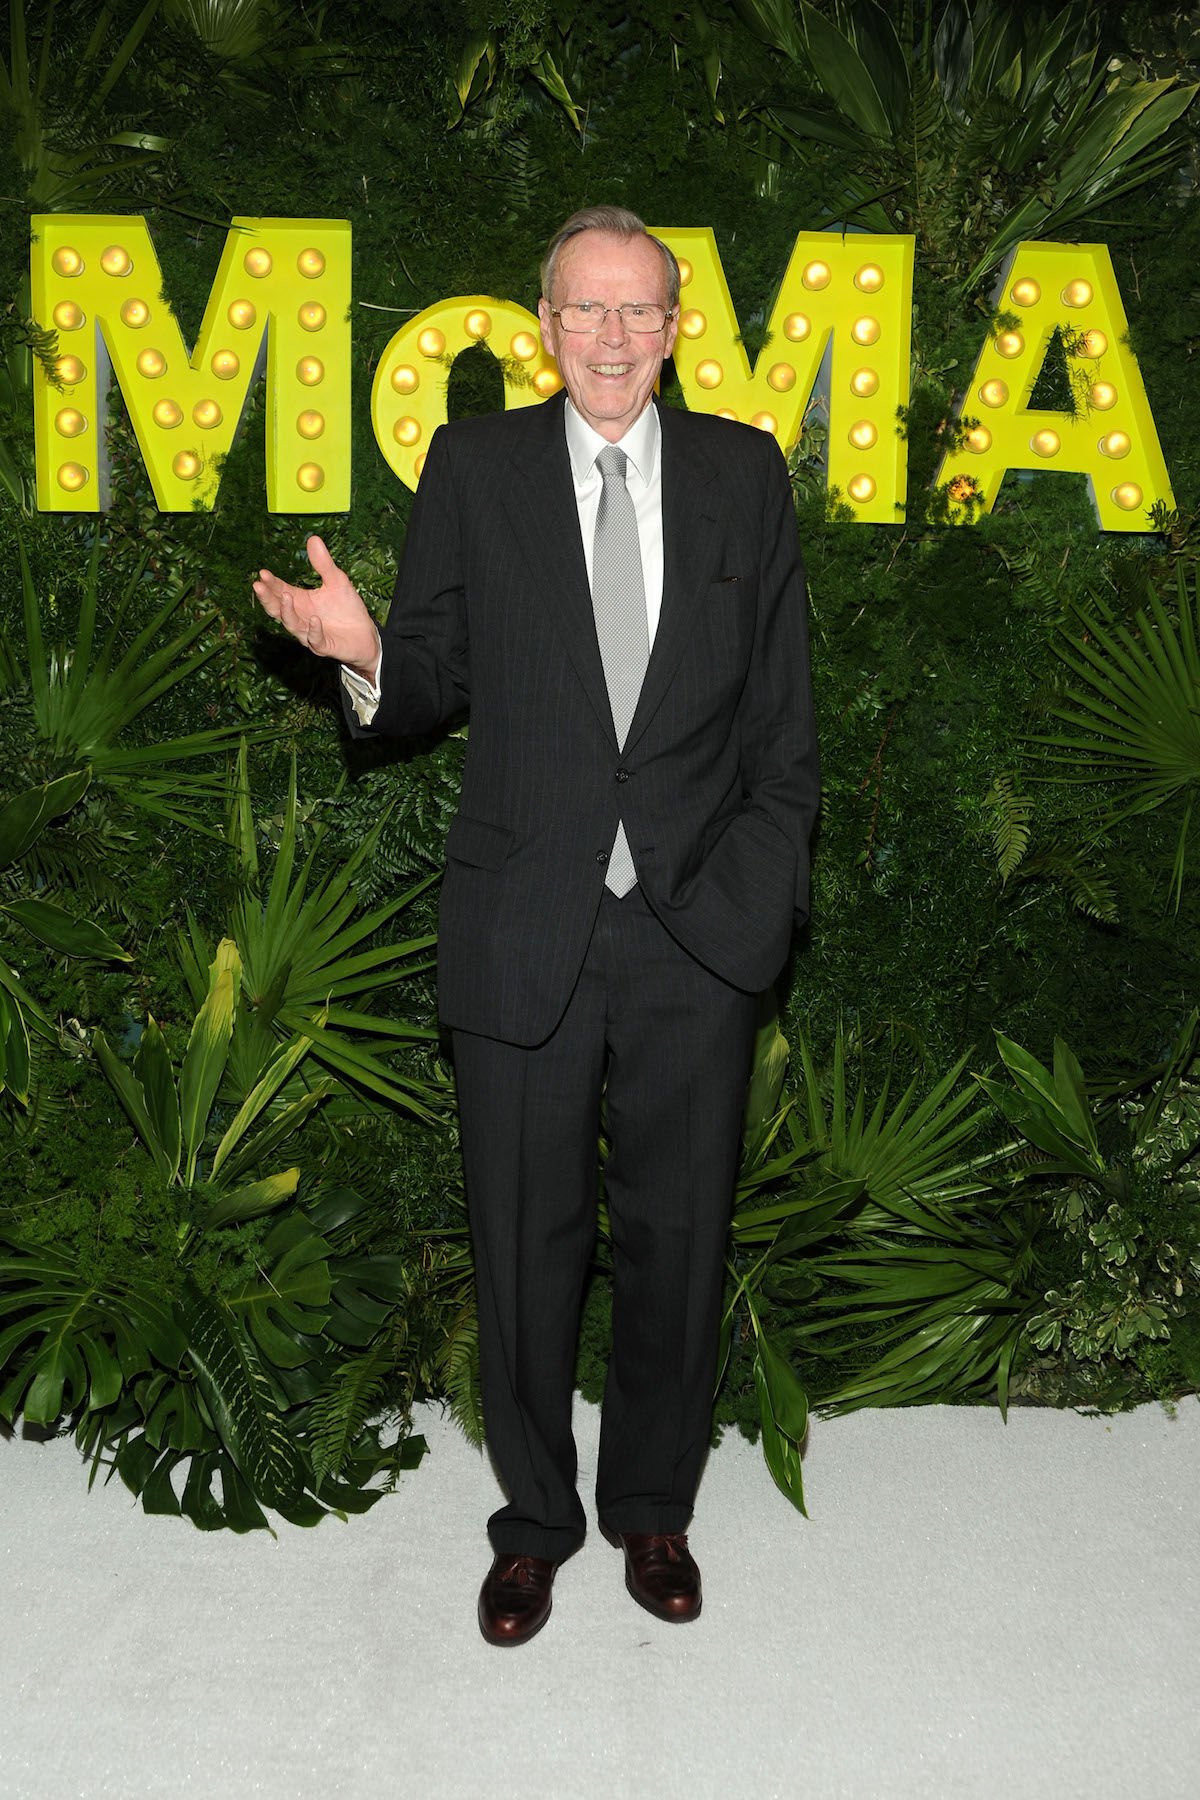 Collector and financier Donald Marron attends the 2013 Party In The Garden at the Museum of Modern Art. Photo by Ben Gabbe/Getty Images.